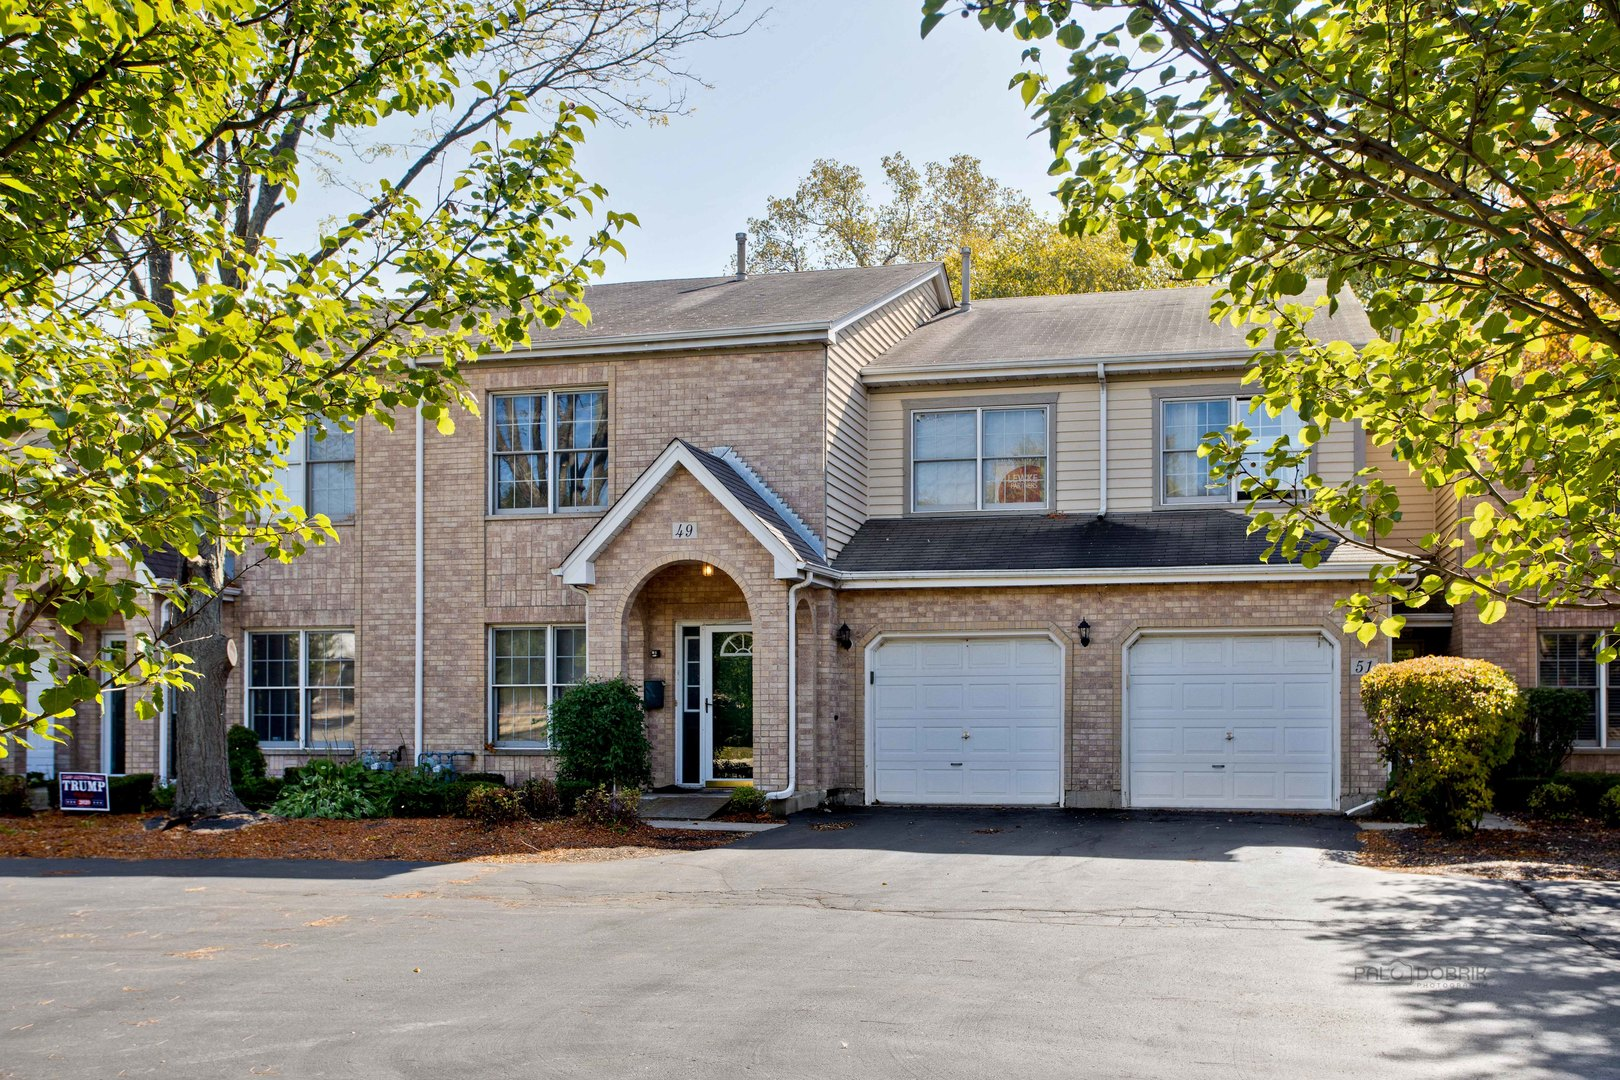 Photo for 49 Cary Street, Cary, IL 60013 (MLS # 10897455)